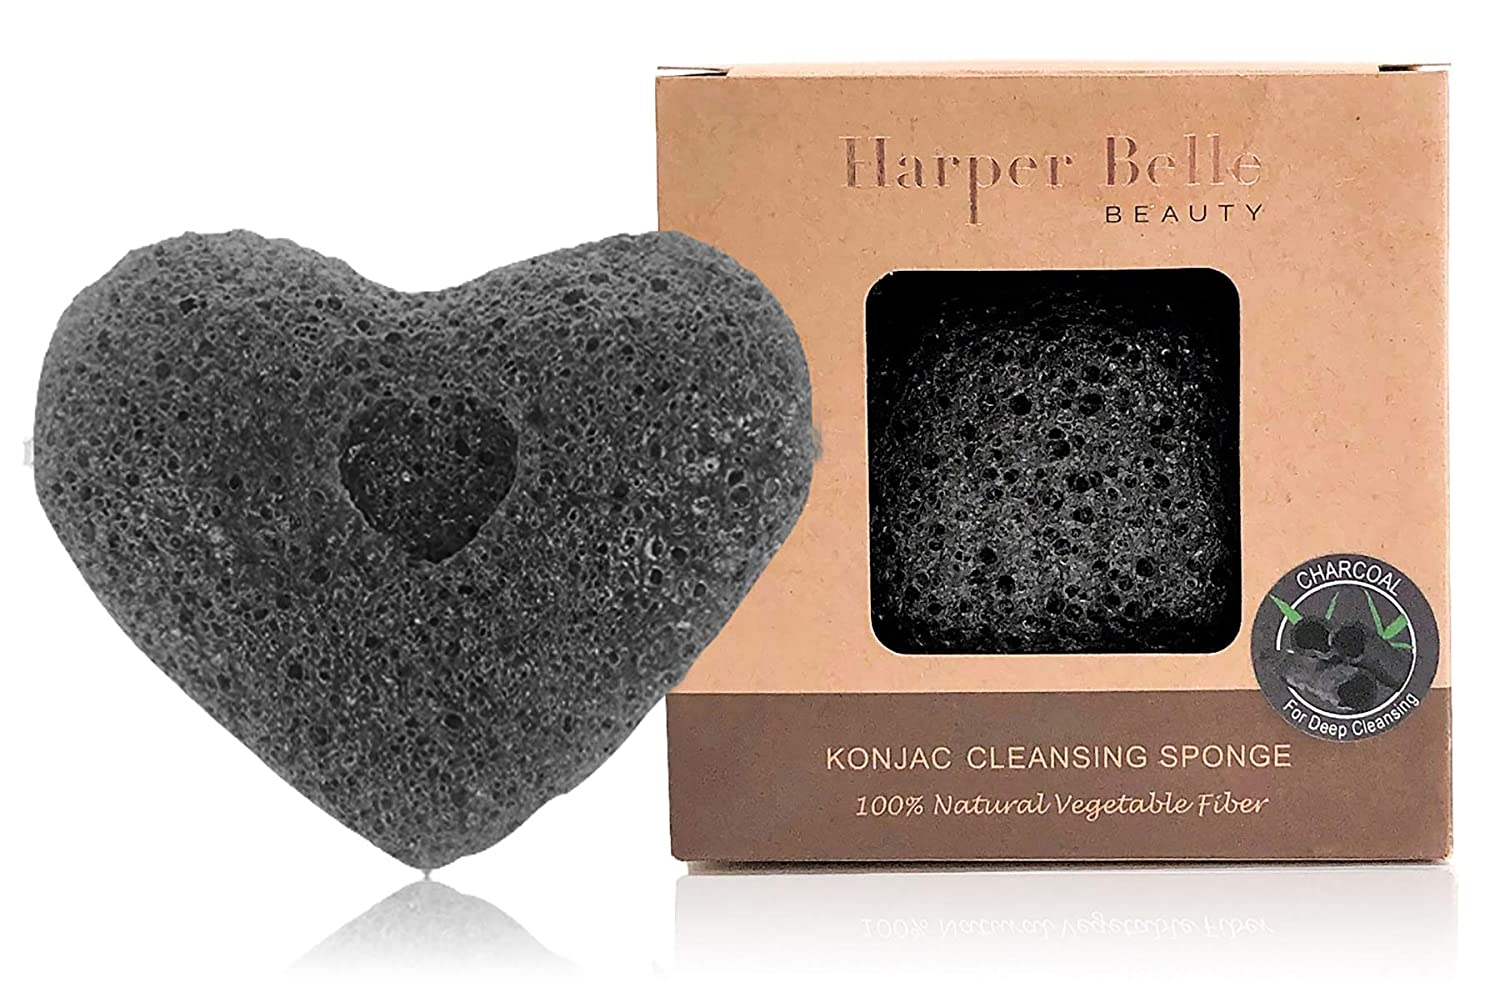 Harper Belle Beauty Organic Konjac Facial & Body Cleansing Heart Sponge | Natural & Gentle Exfoliant | Bamboo Charcoal for Oily & Acne-Prone Skin